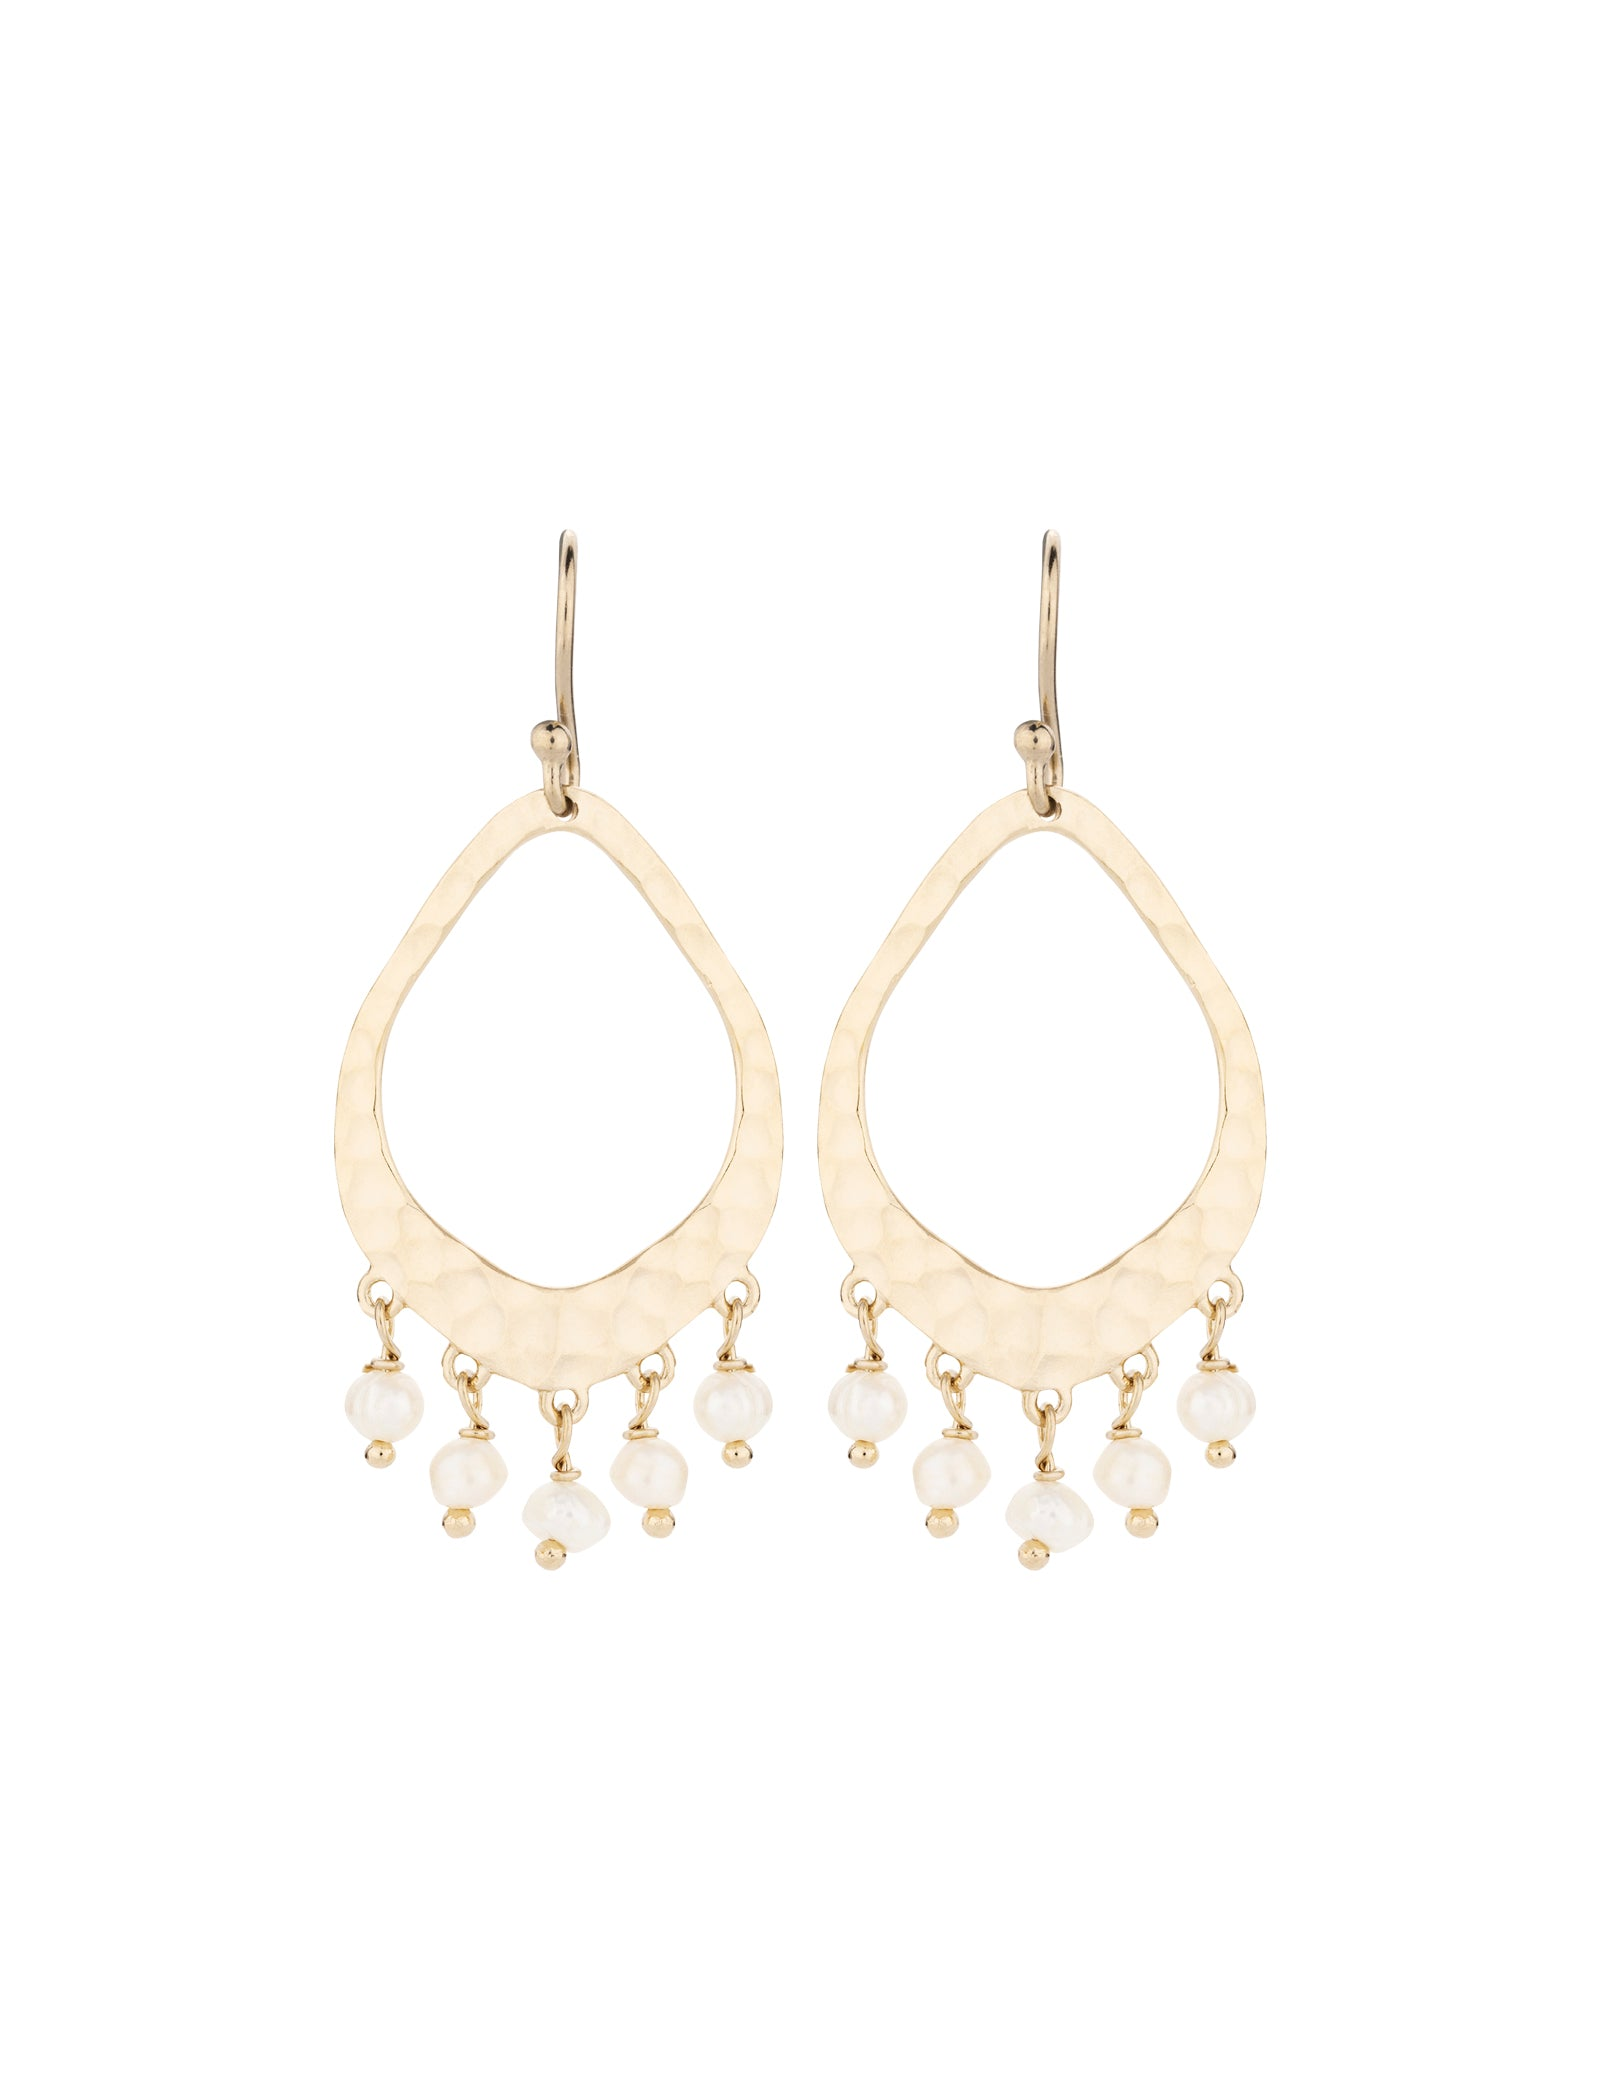 Bonnie Beaded Earring - Soft Gold